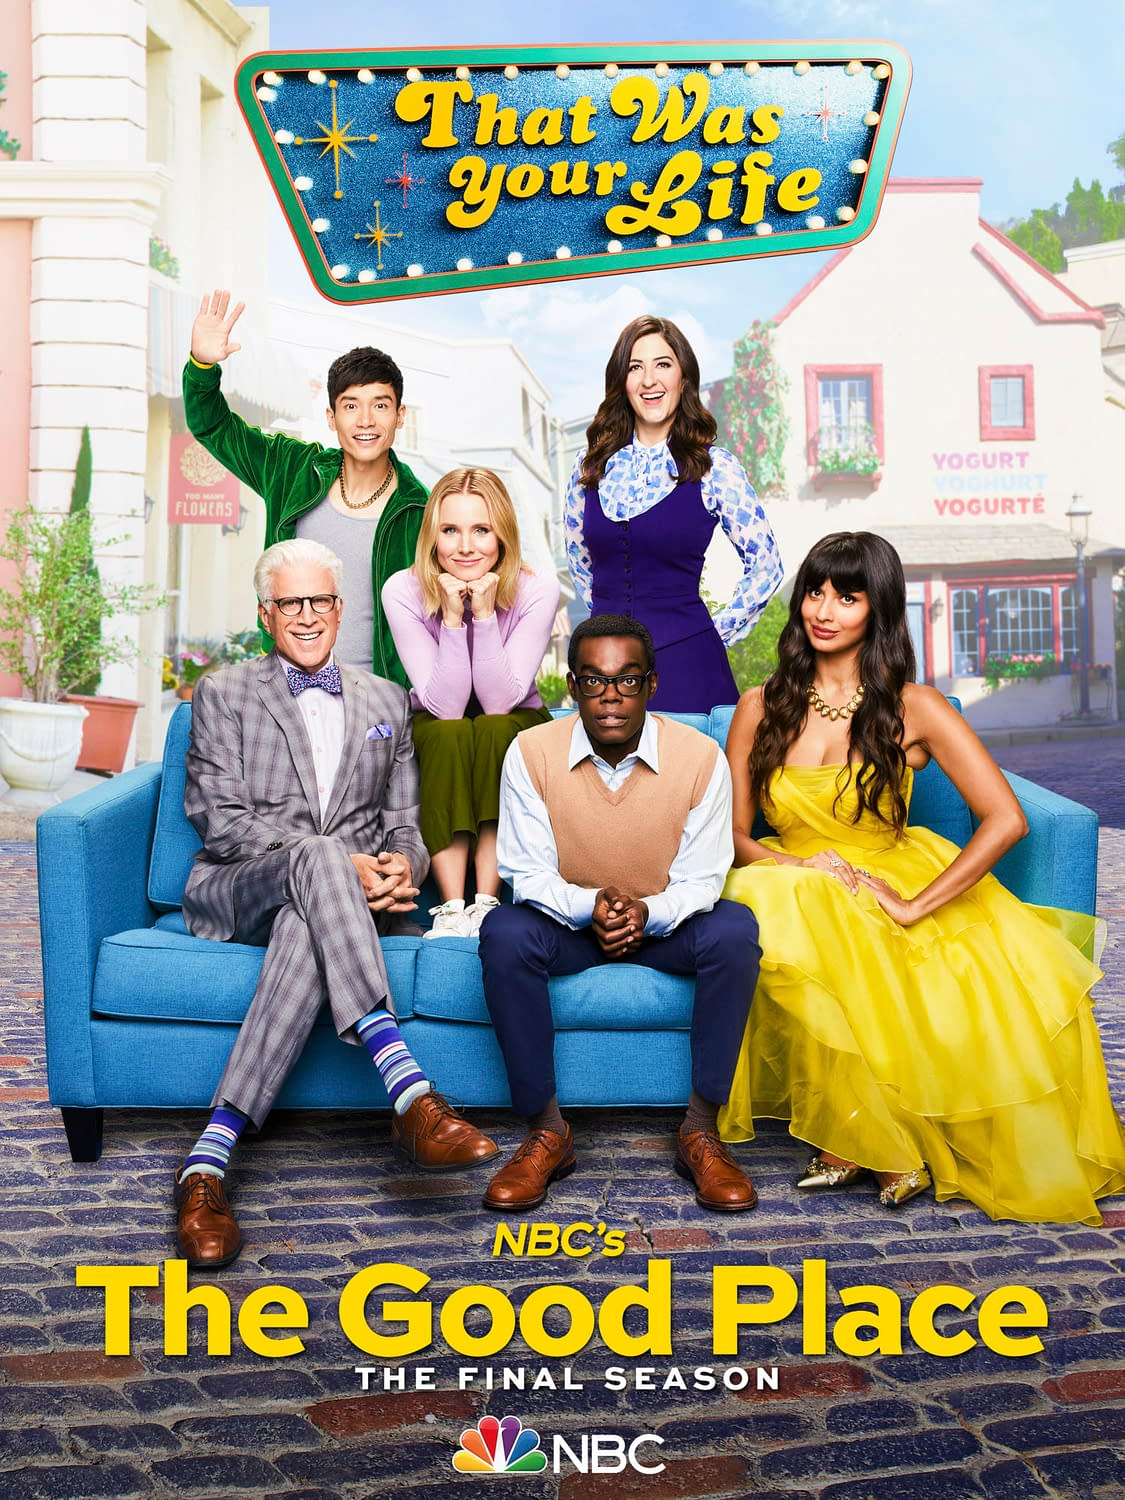 The Good Place - hot takes - Adriel